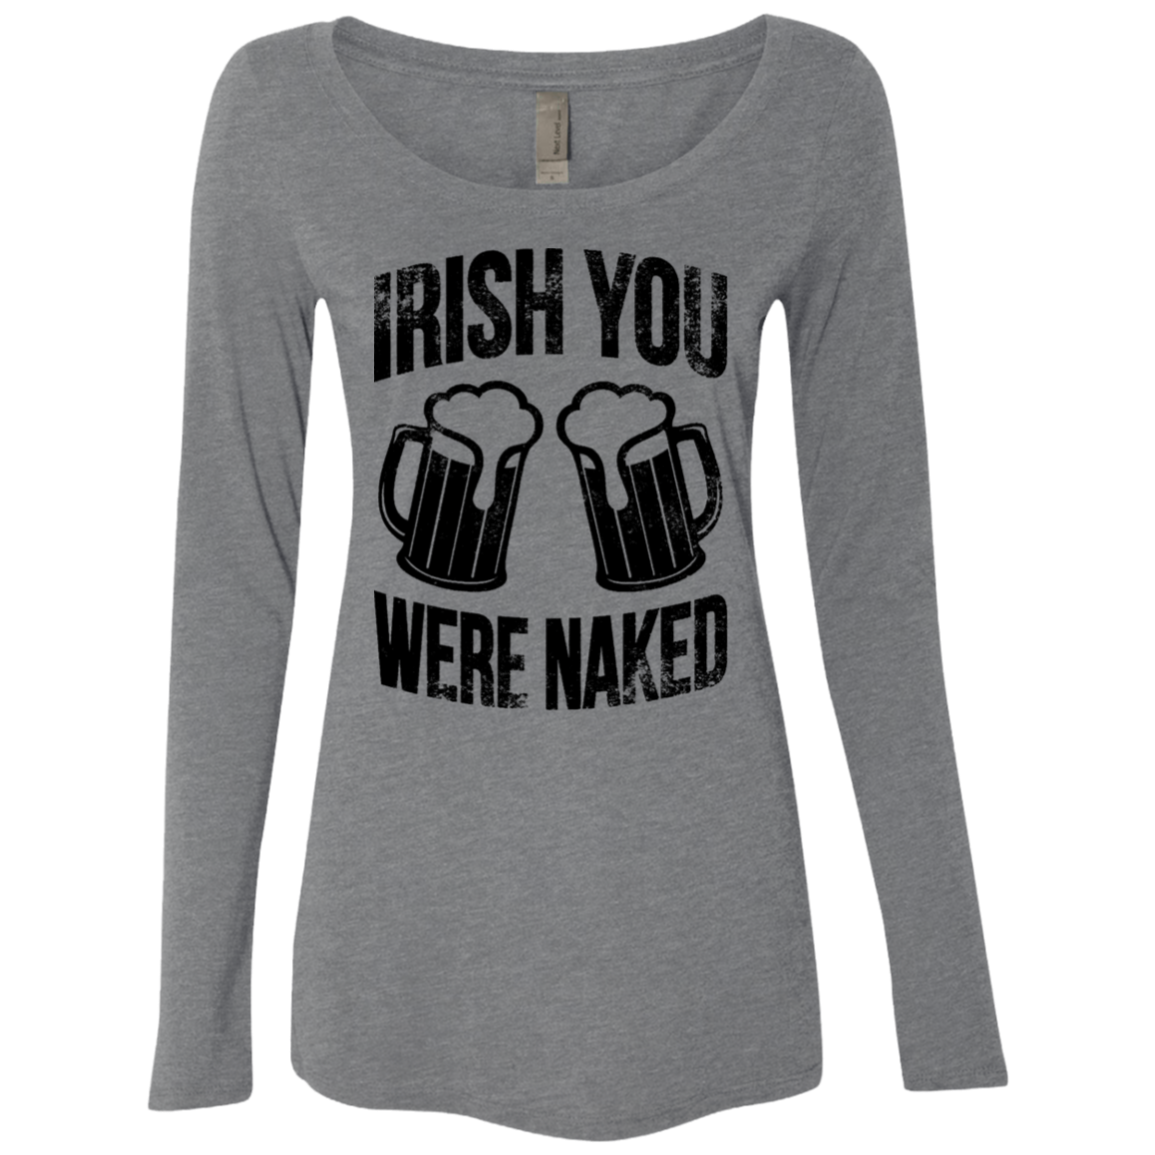 Irish You Were Naked Women's Long Sleeve Tee